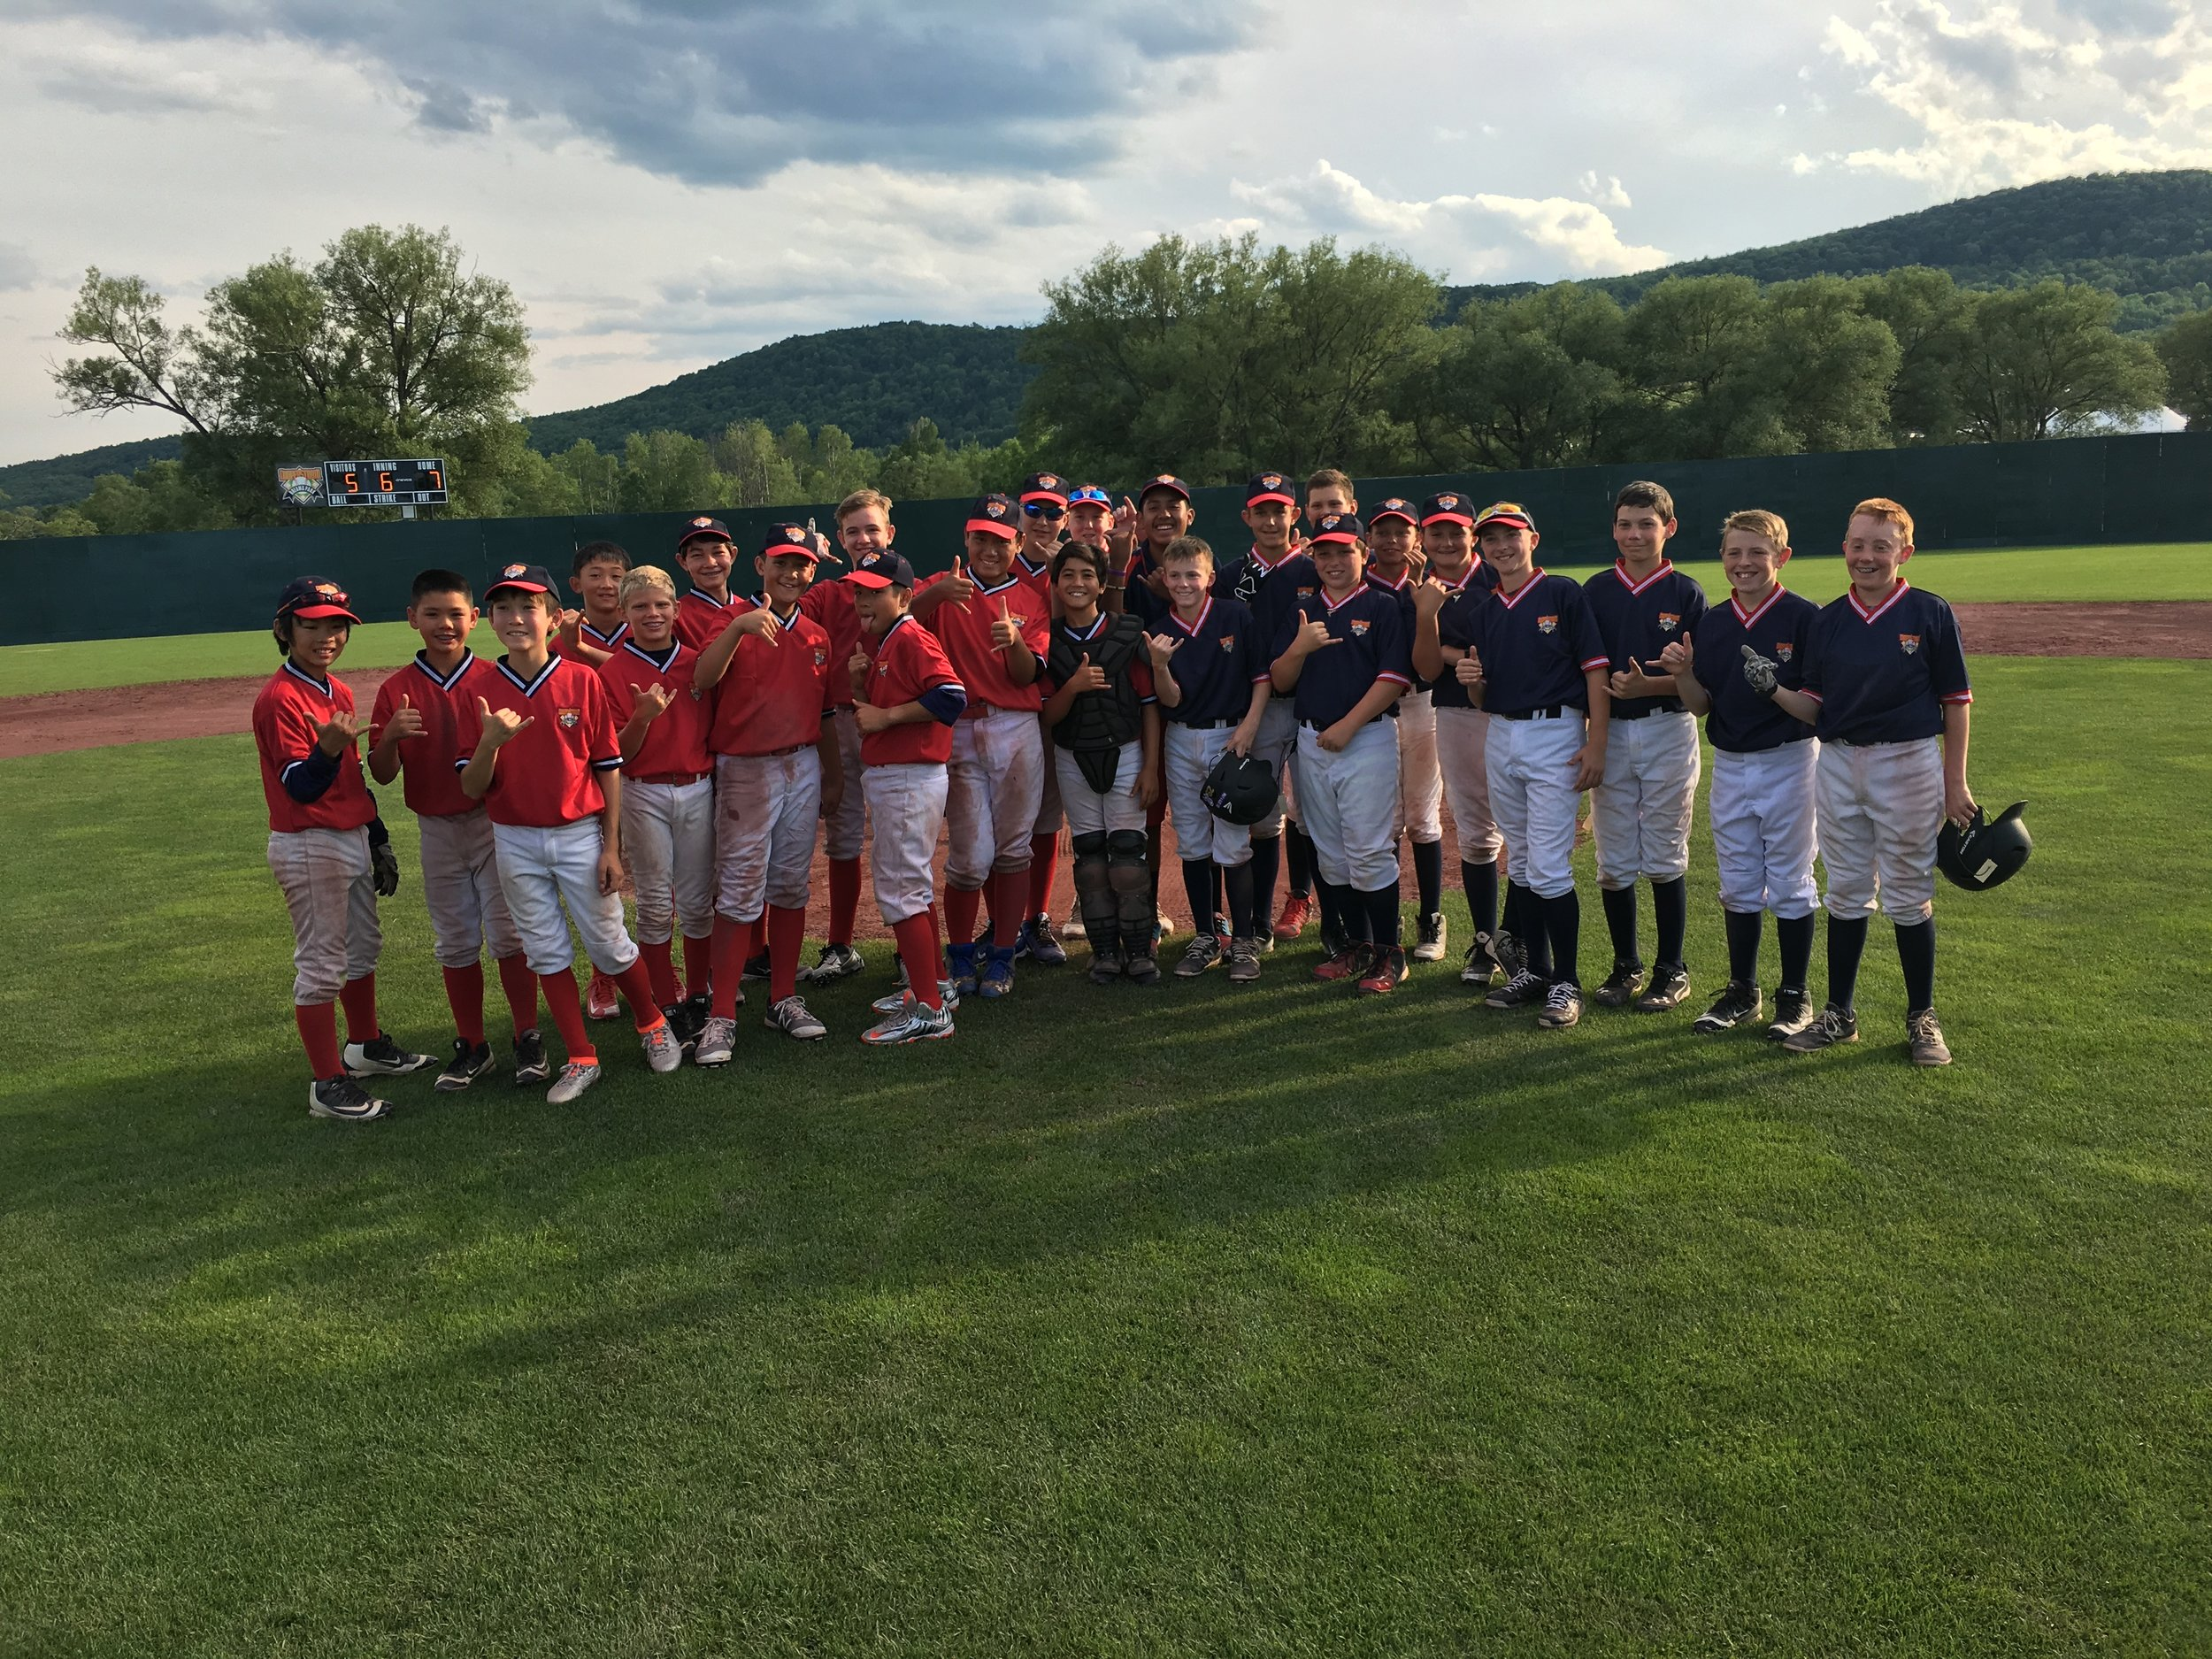 12U HITS ELITE at COOPERSTOWN DREAMS PARK post game picture with a team from HONOLULU, HAWAII